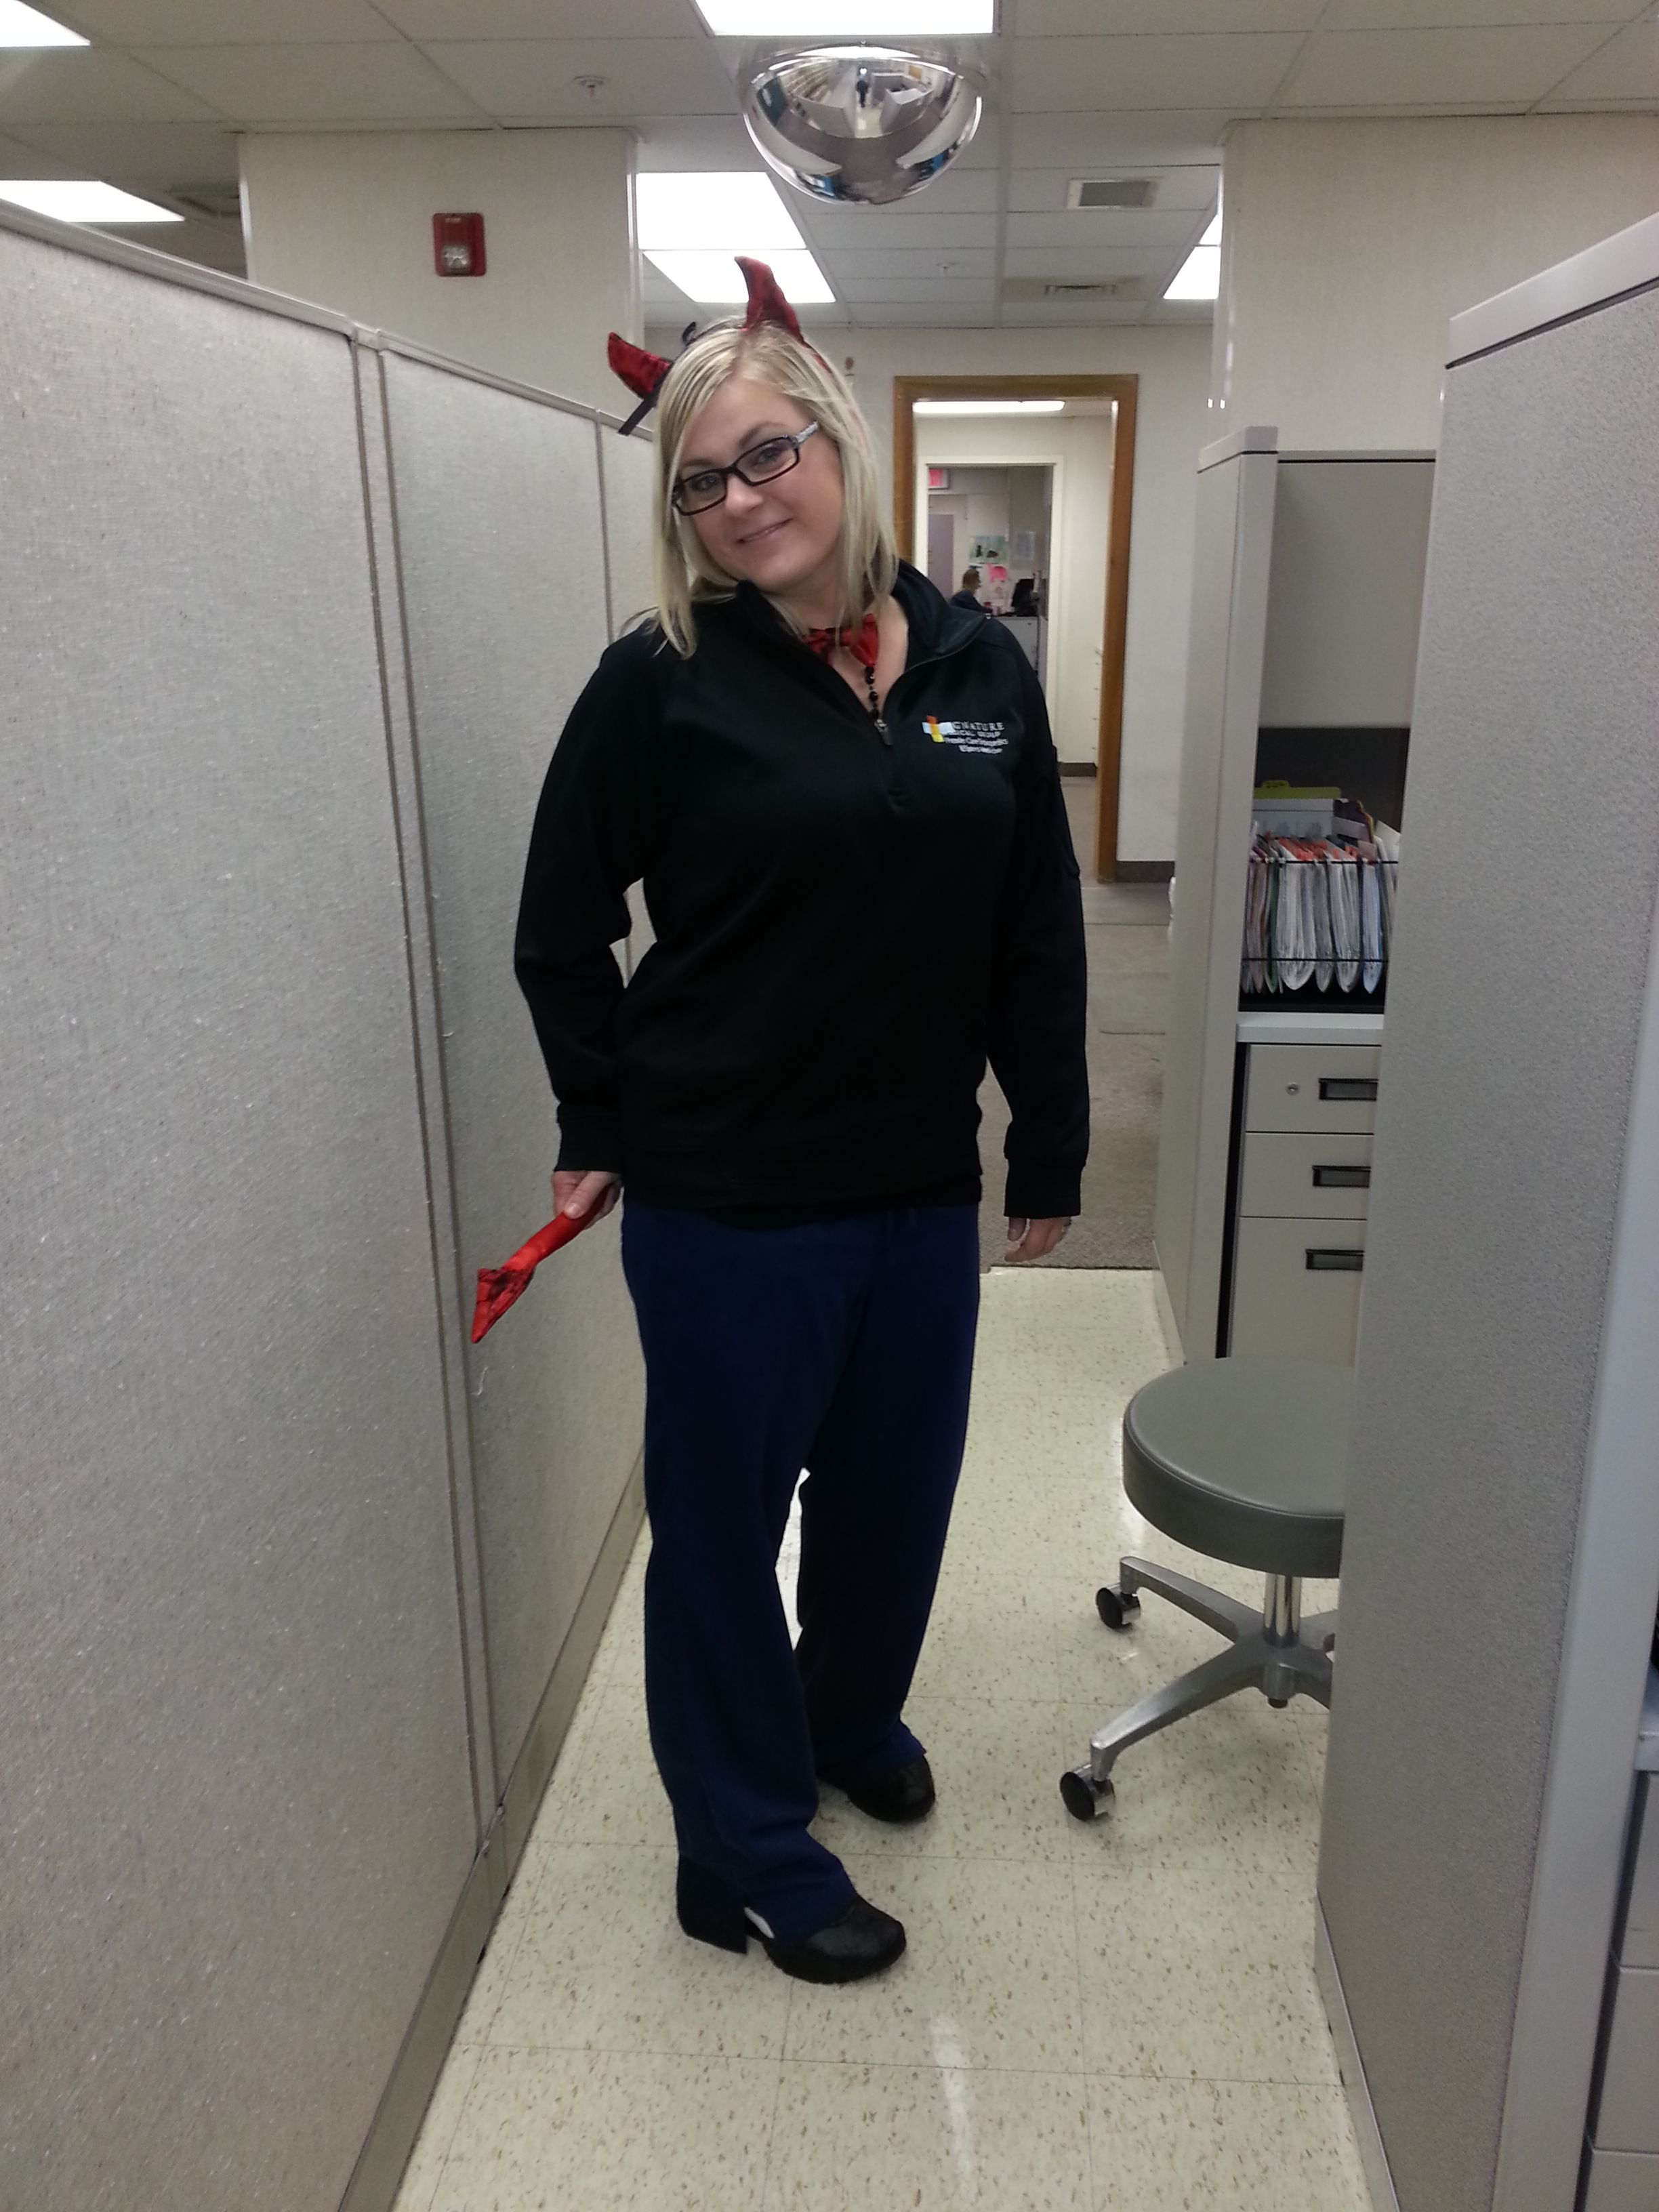 Happy Halloween from Premier Care Orthopedics and Sports